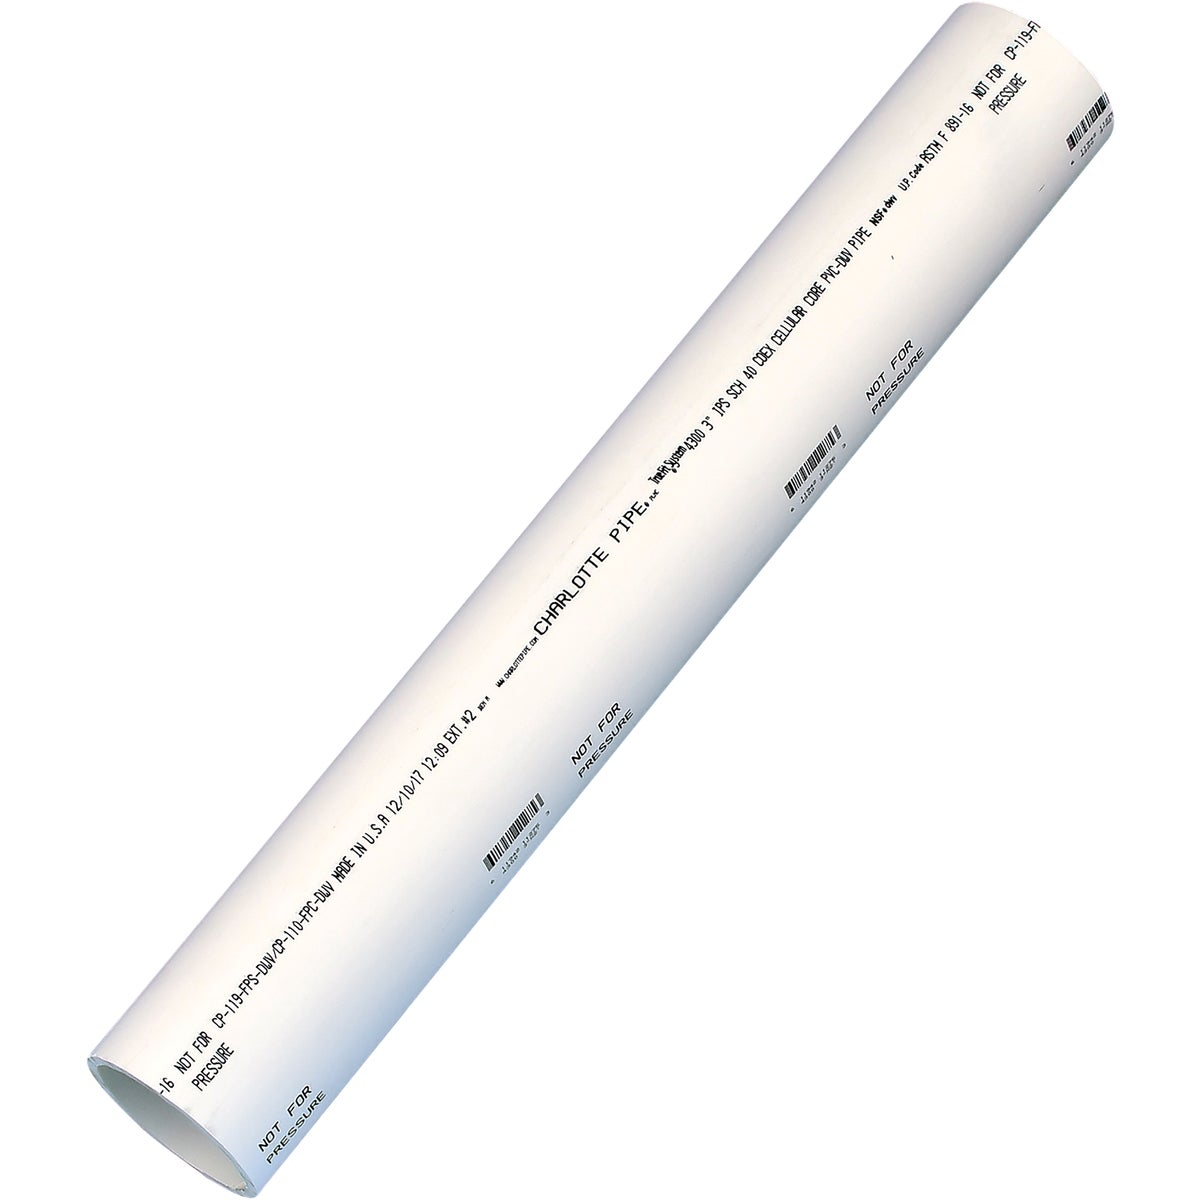 3X2 DWV CC PVC PIPE - 700312F by Genova Inc